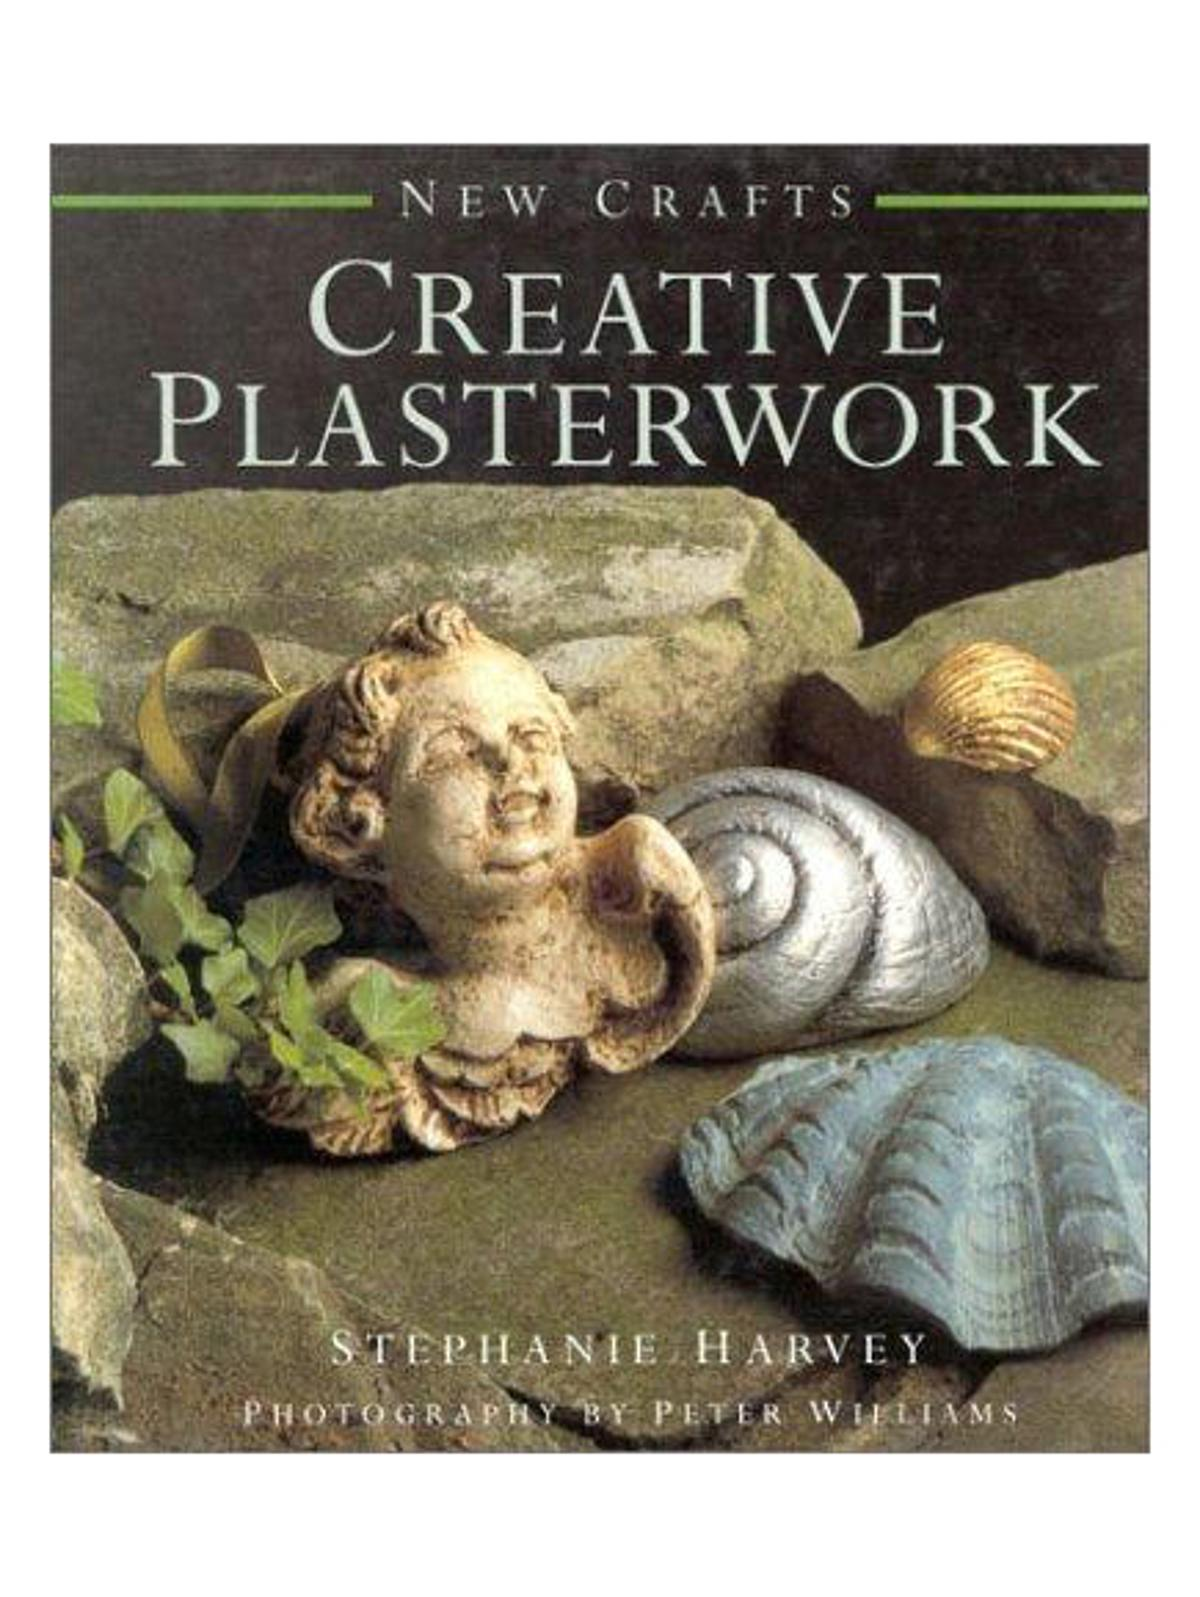 New Crafts: Creative Plasterwork